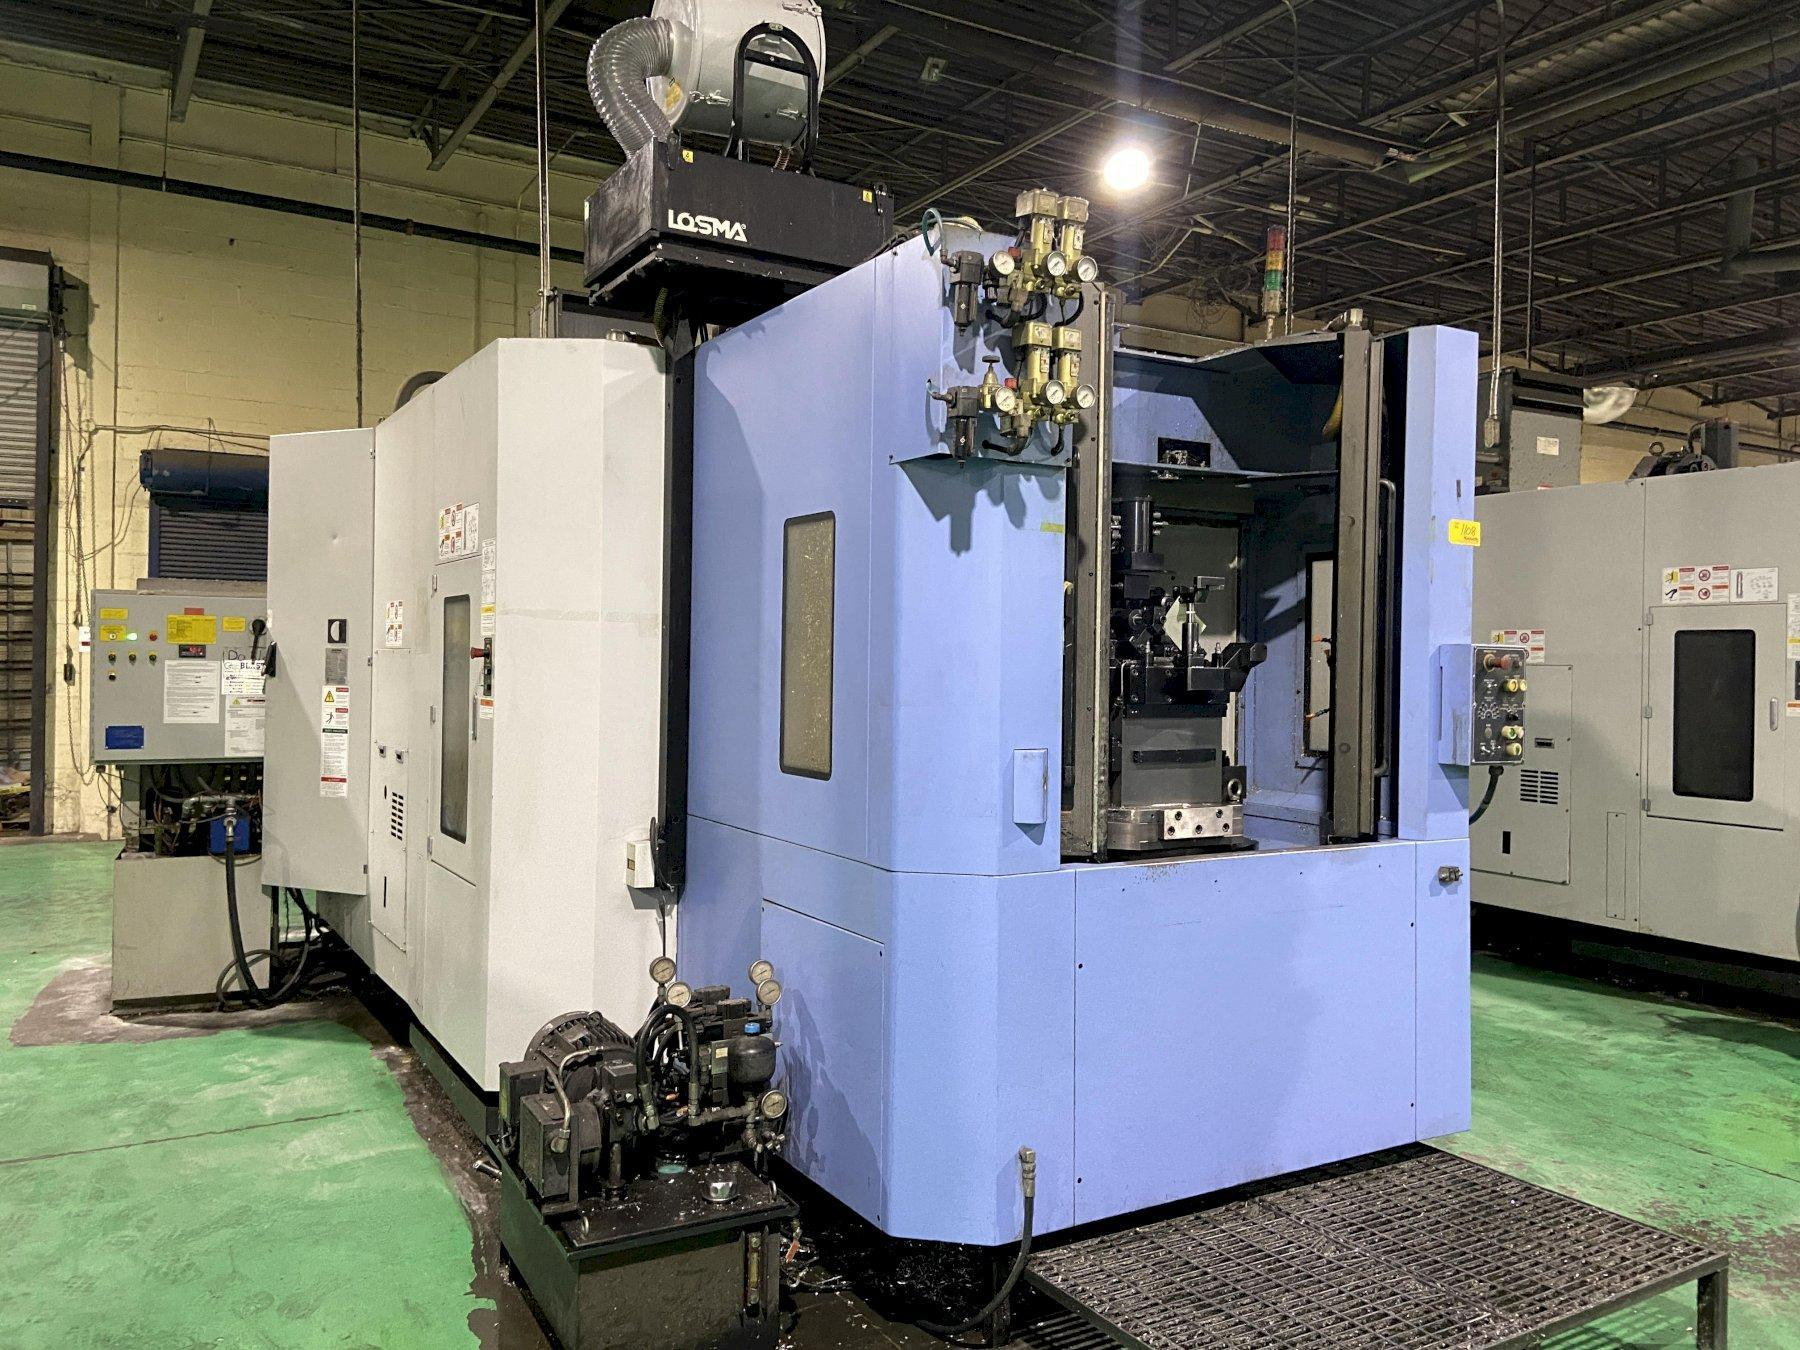 """Doosan HP5100II CNC Horizontal Machining Center, Fanuc 31iA, 19.7"""" Pallets, 14K Spindle, CTS, 30 HP, Hyd Clamping, 60 ATC, Chiller, Full 4th, 2015 (4 Available)"""